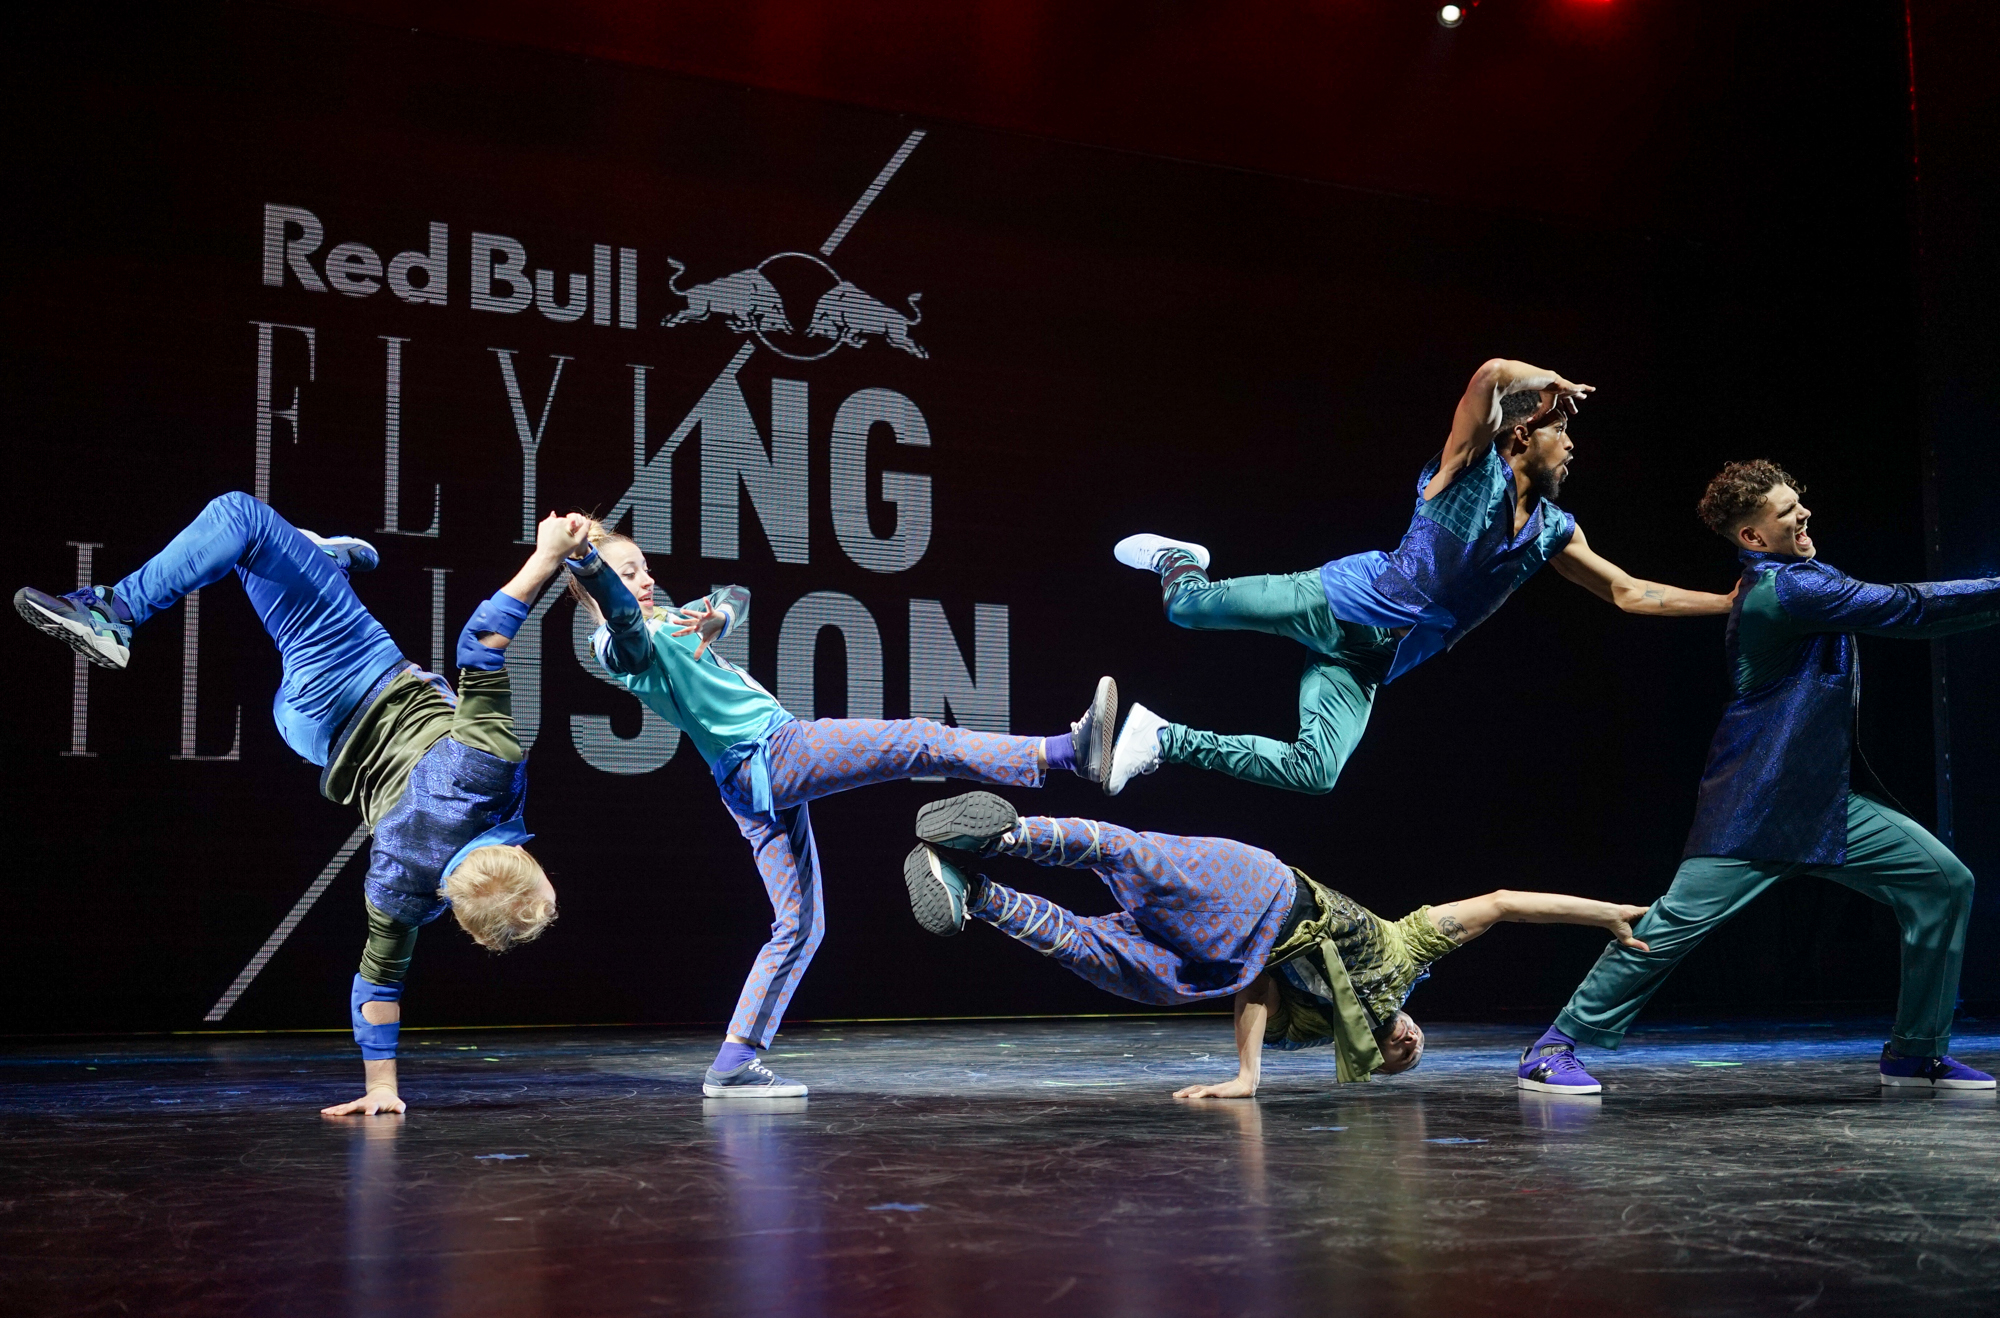 die breakdance crew flying steps kommt mit einer abgefahrenen show zur ck nach berlin mit. Black Bedroom Furniture Sets. Home Design Ideas